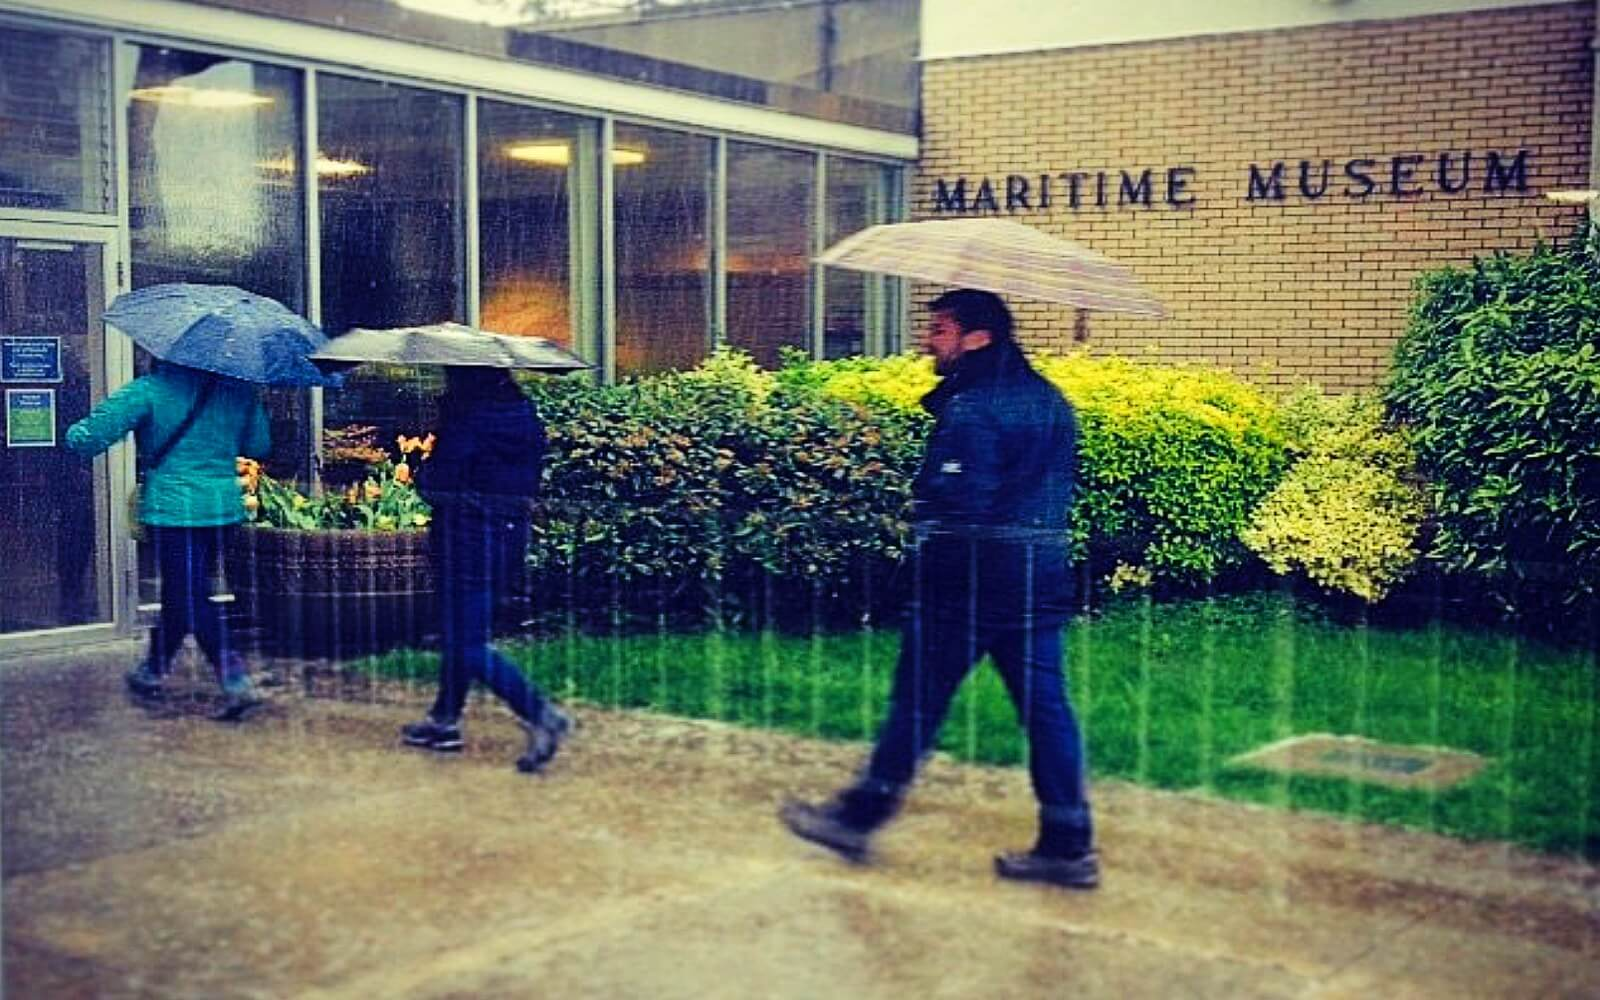 Customers brave the rain to enter the Vancouver Maritime Museum